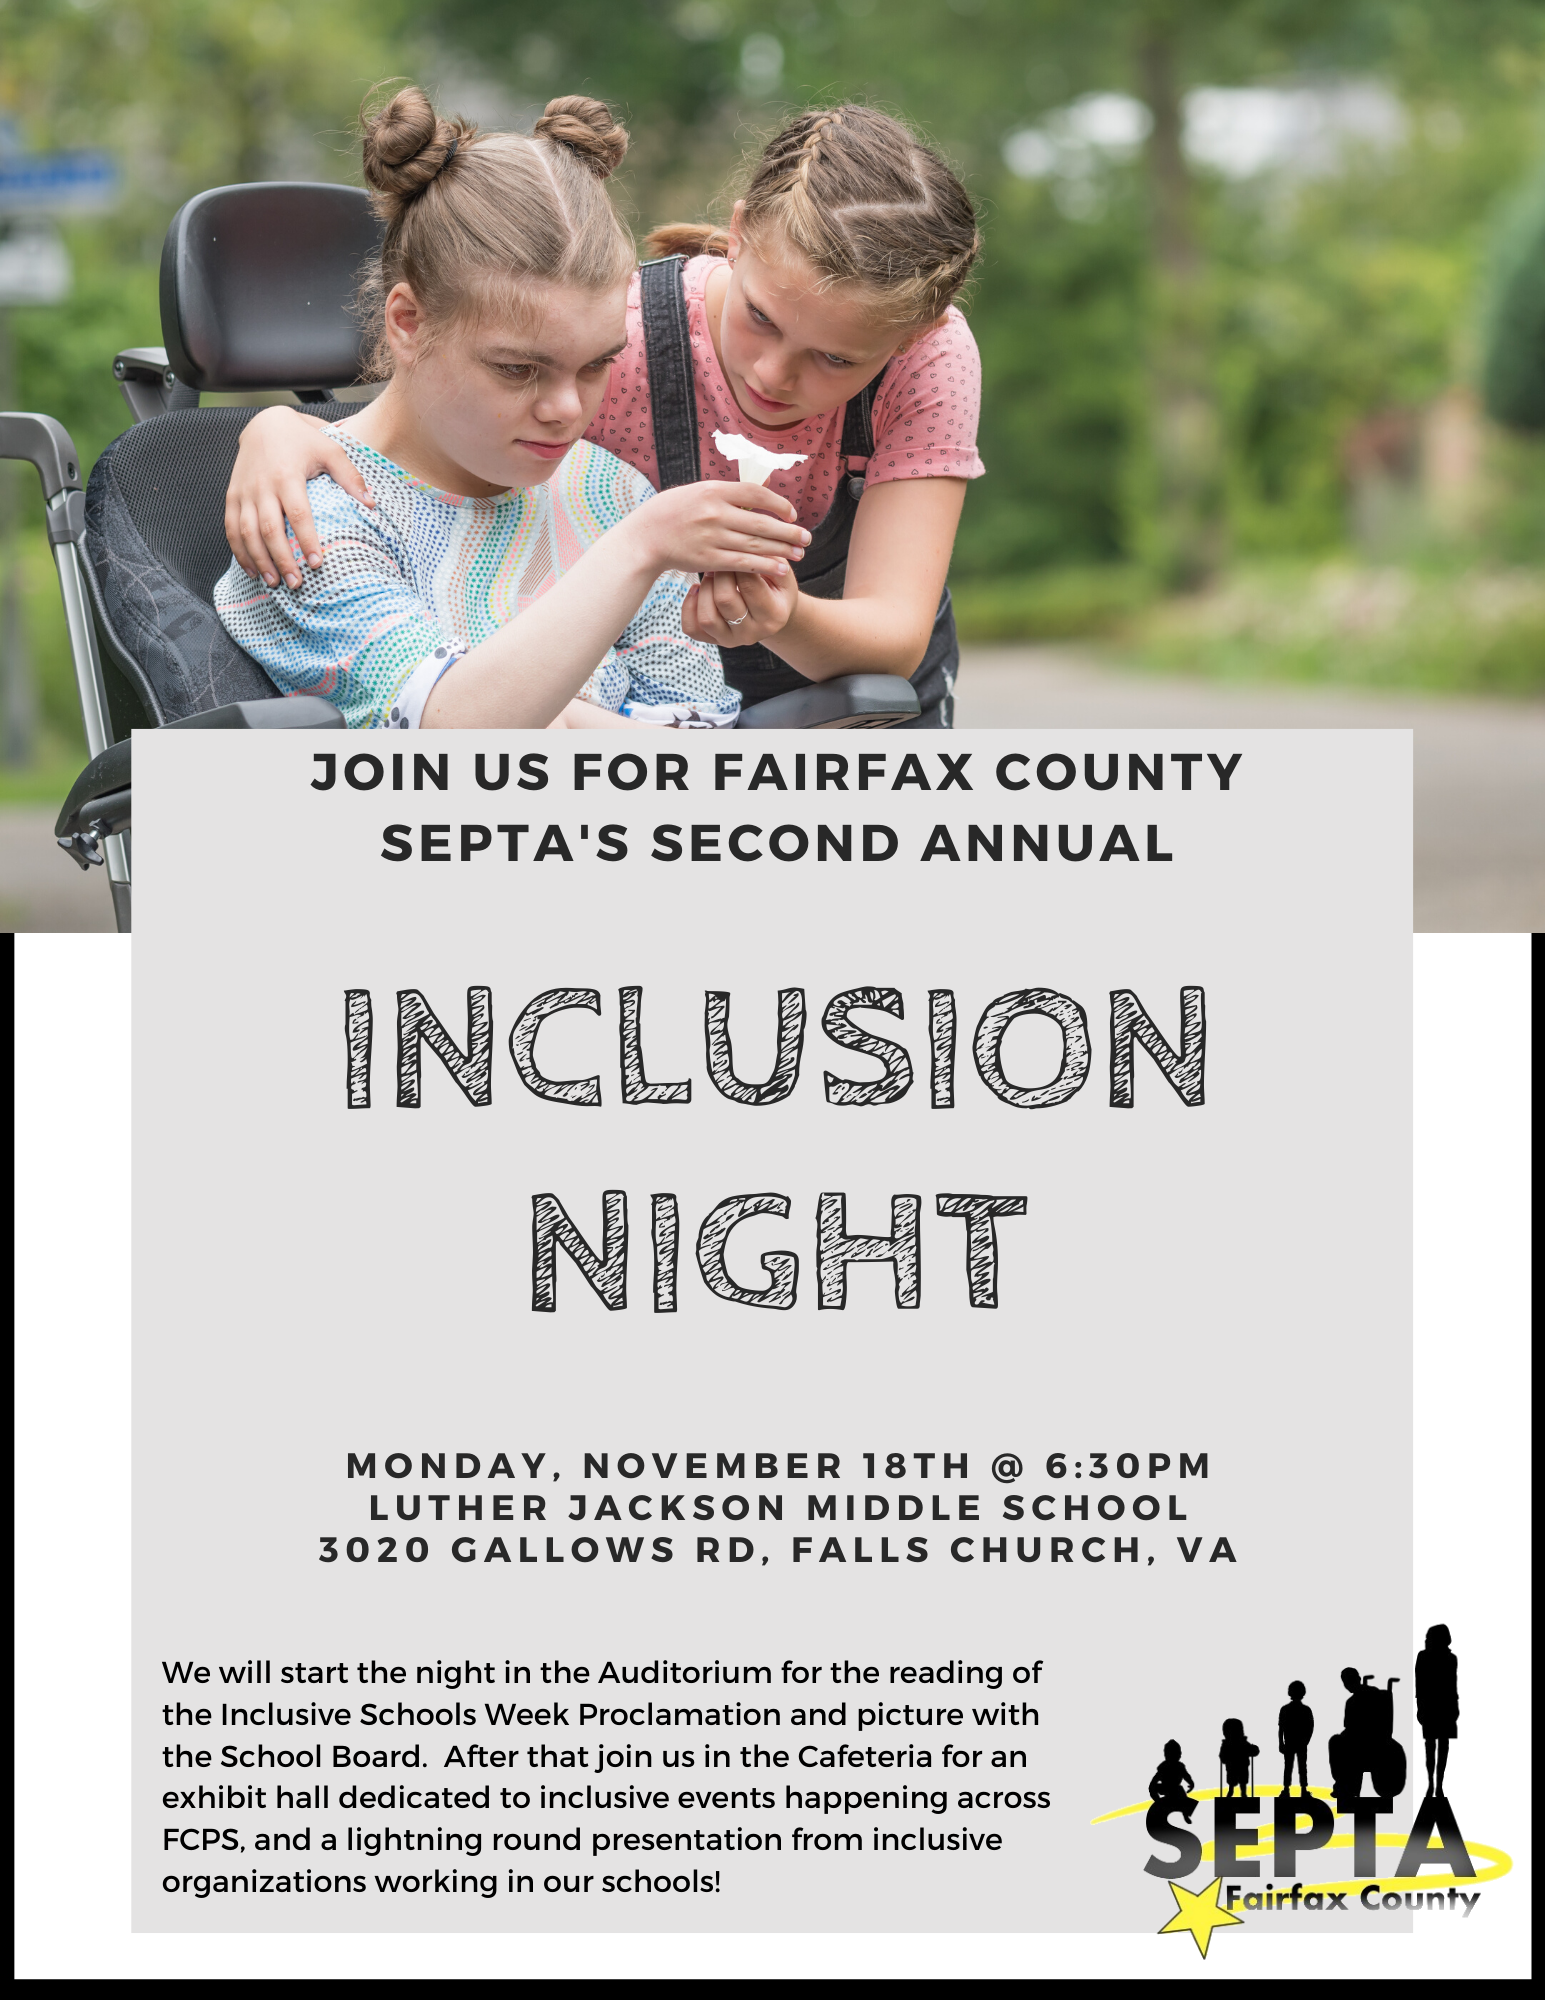 Inclusion Night - 6:30PM on November 18th at Luther Jackson Middle School